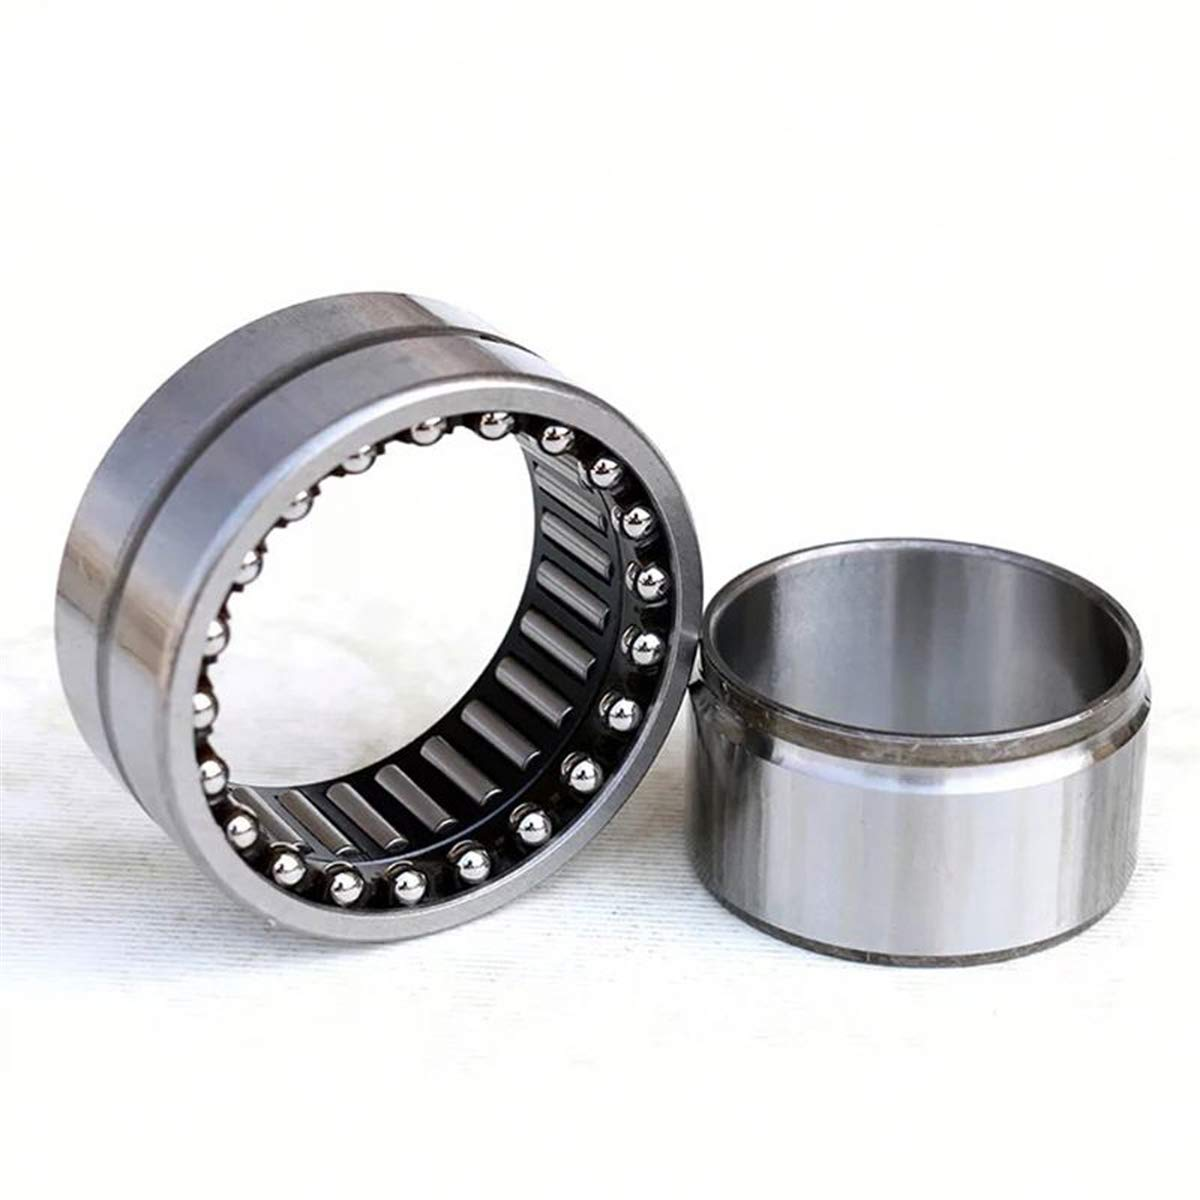 VXB Brand NATA59/22 Combined Needle & Ball Bearing 22x39x23 Type: Needle Roller Bearing Dimensions: 22mm x 39mmx 23mm ID/Bore: 22mm